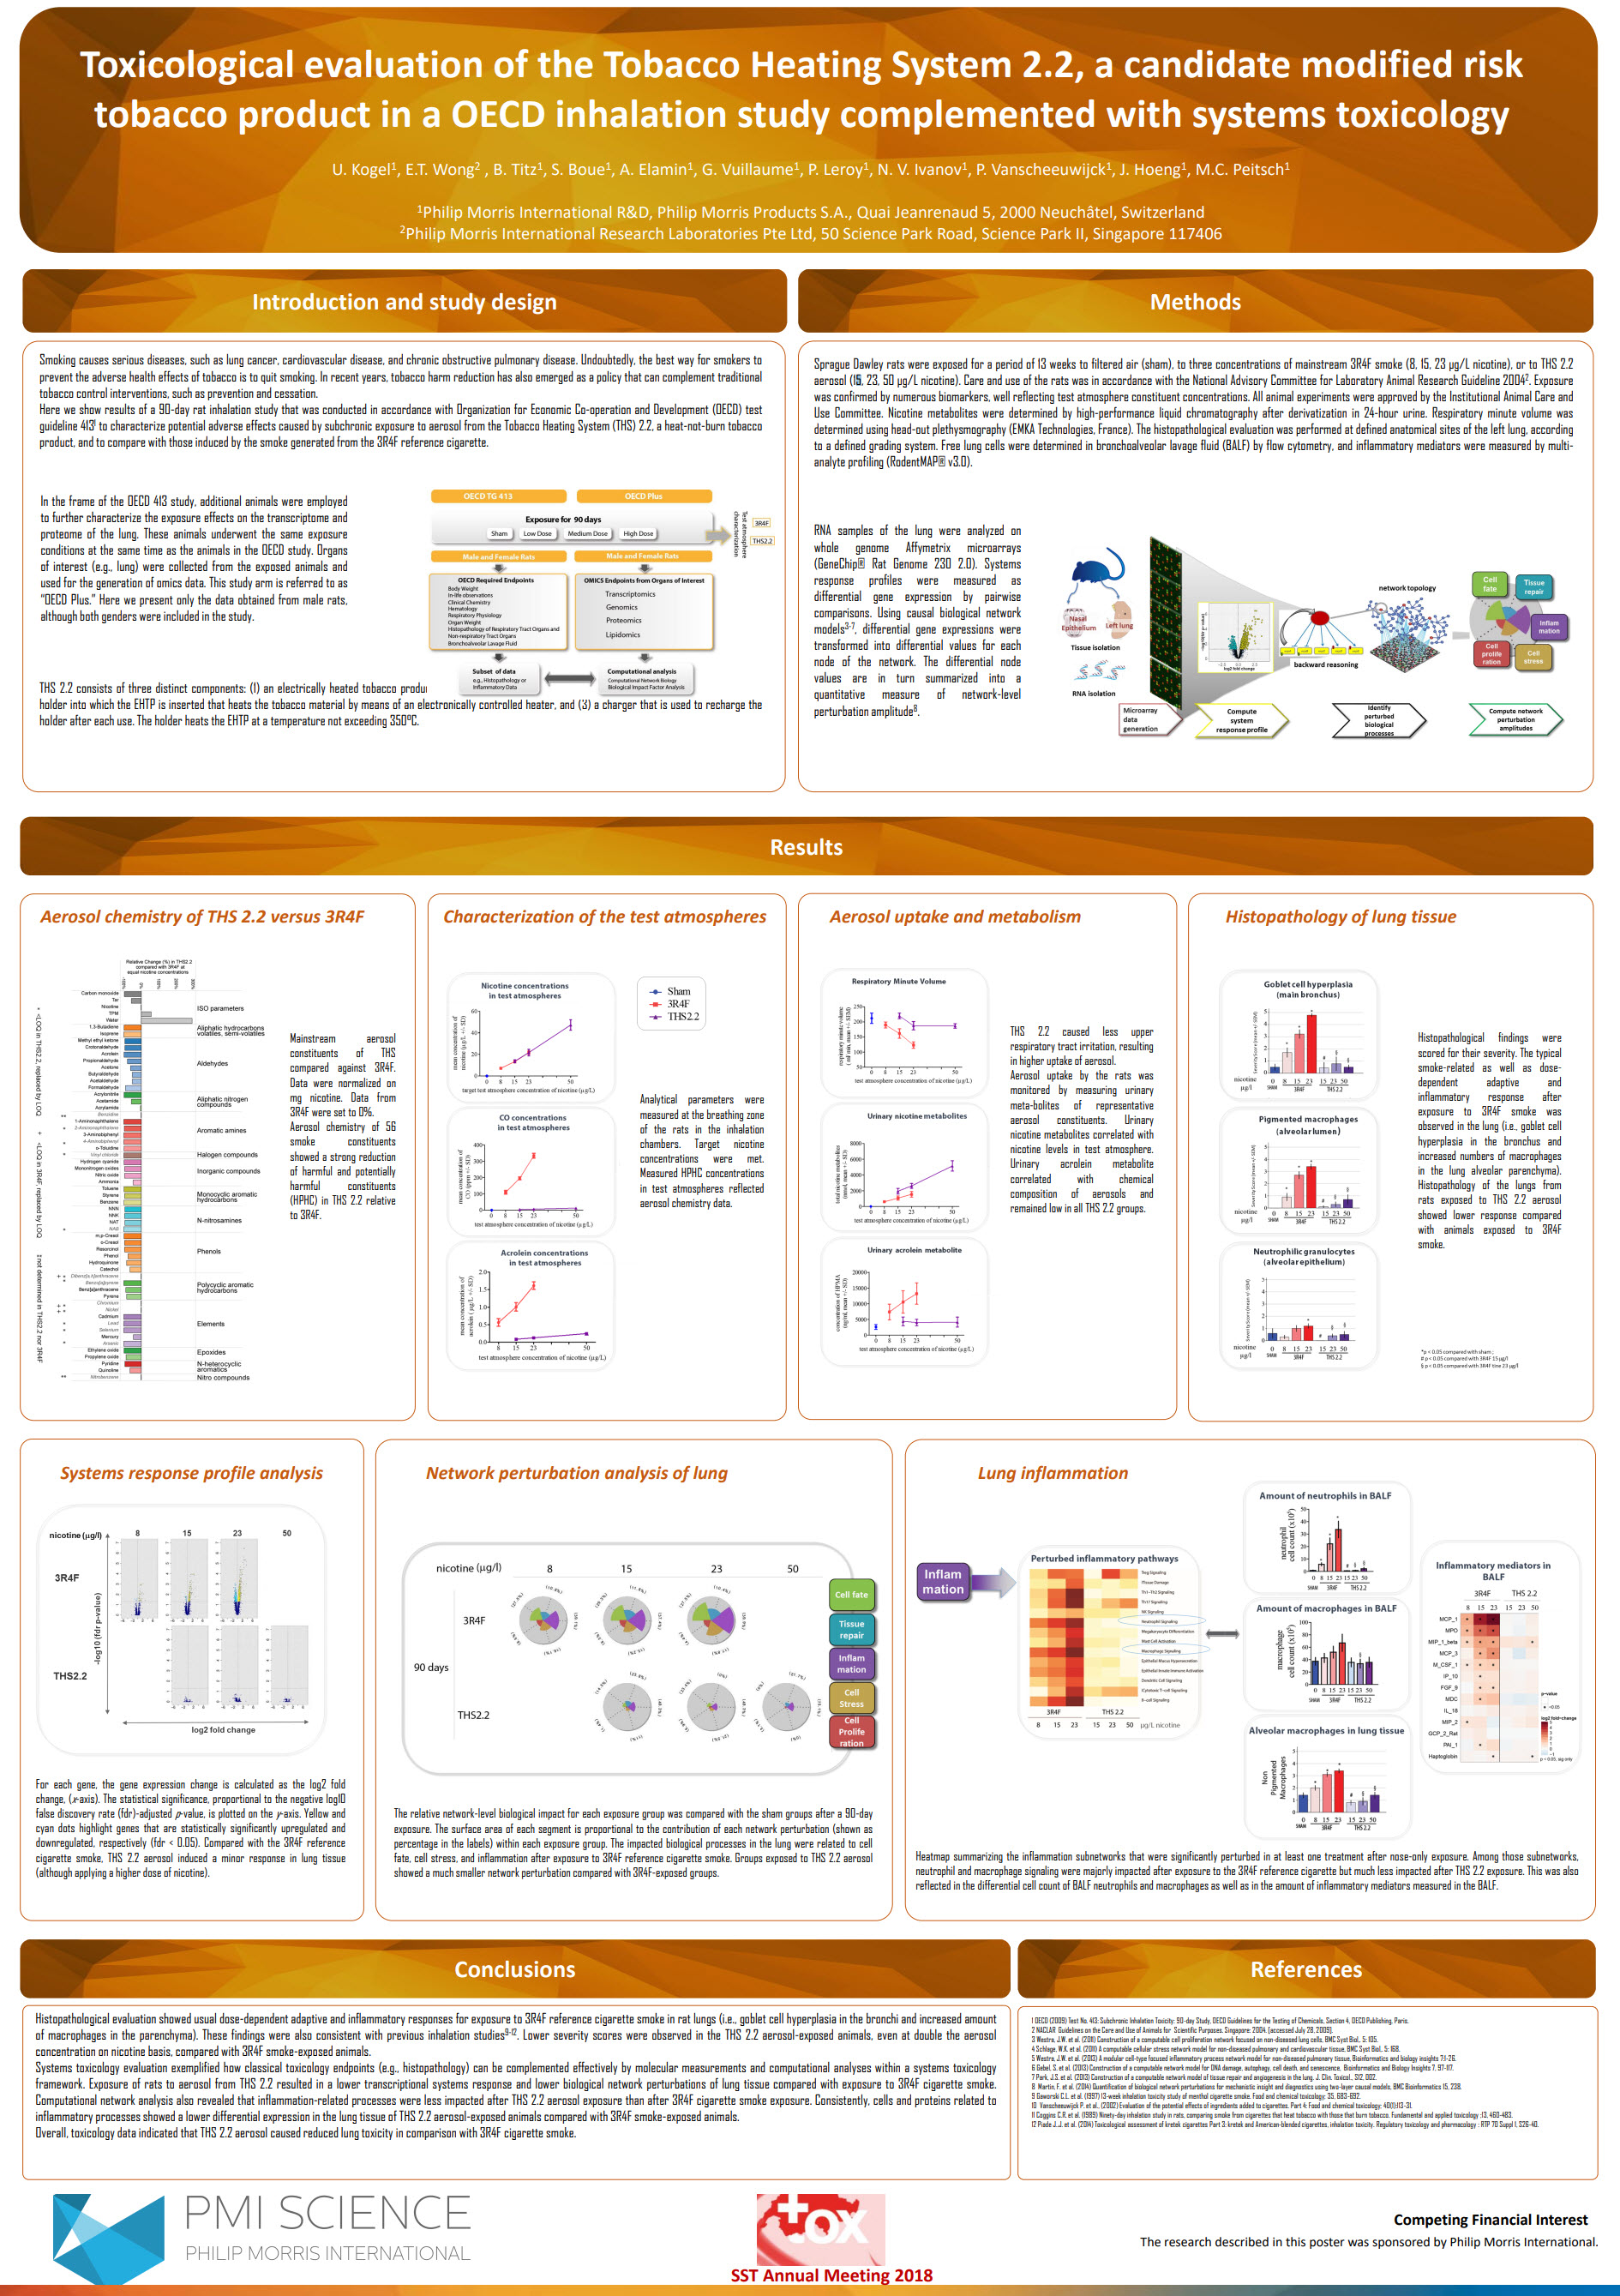 K.Ulrike_Toxicological evaluation of the tobacco Heating System 2